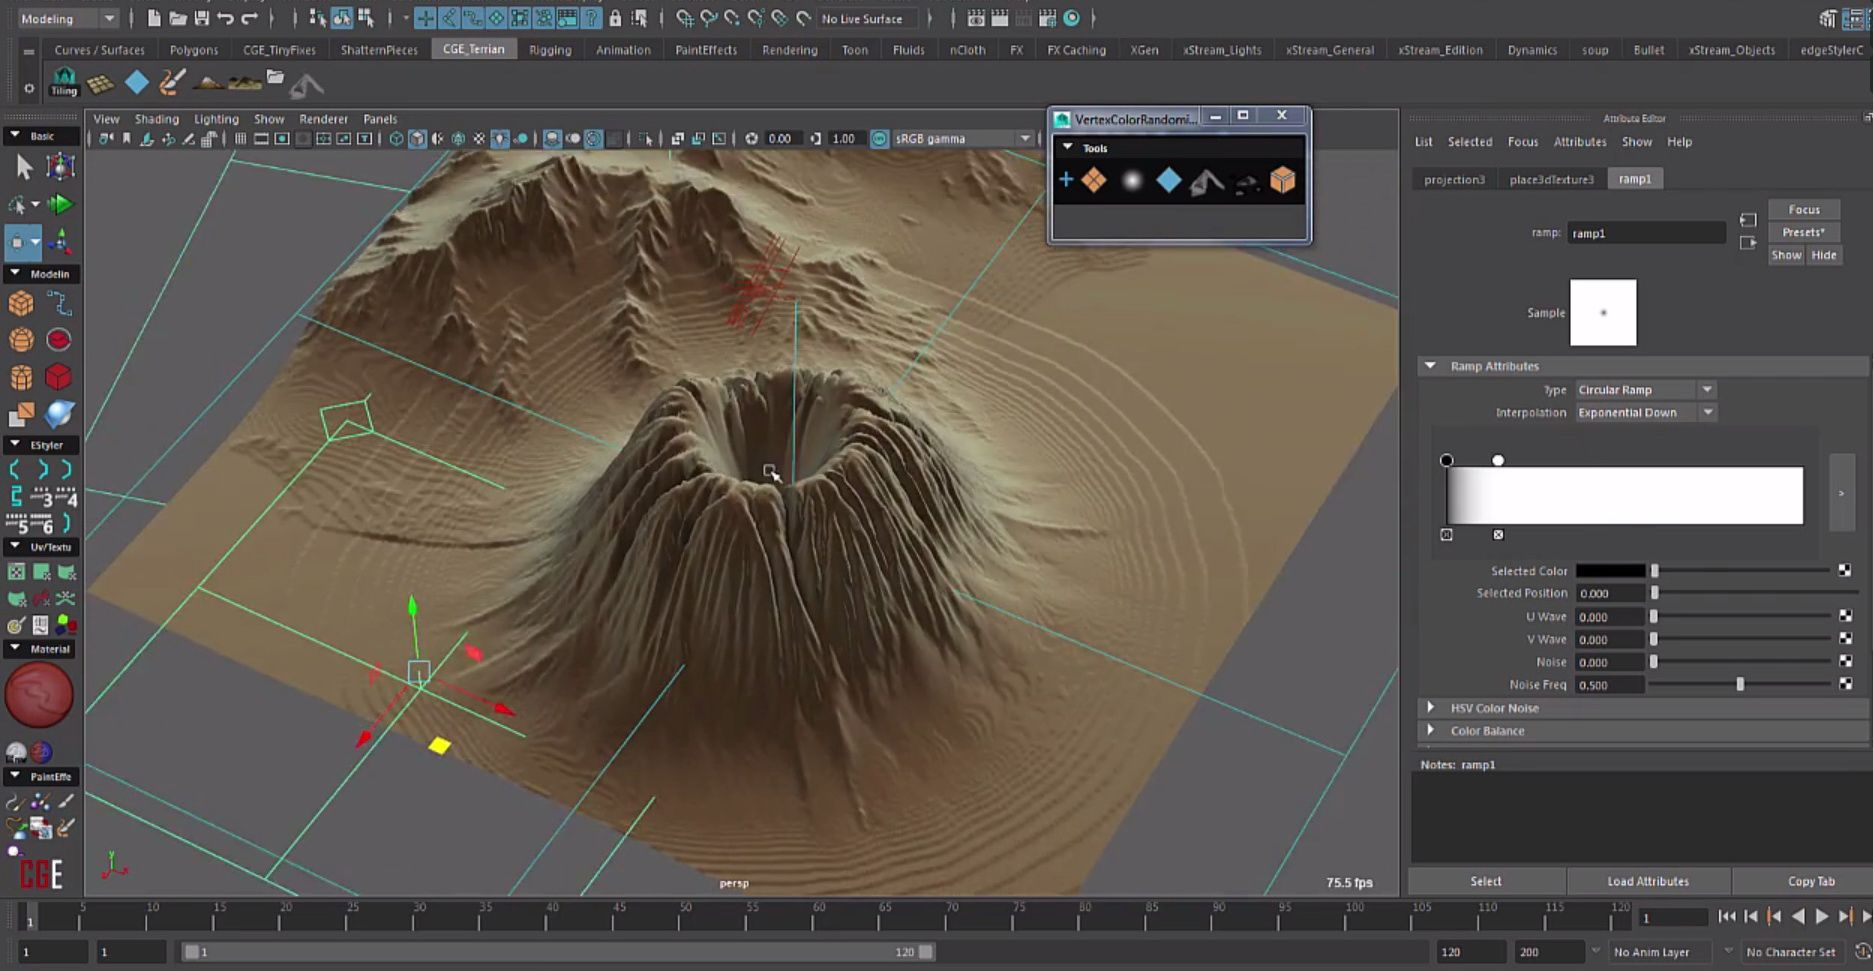 Autodesk maya easy terrain creation script maya tools Easy 3d modeling software